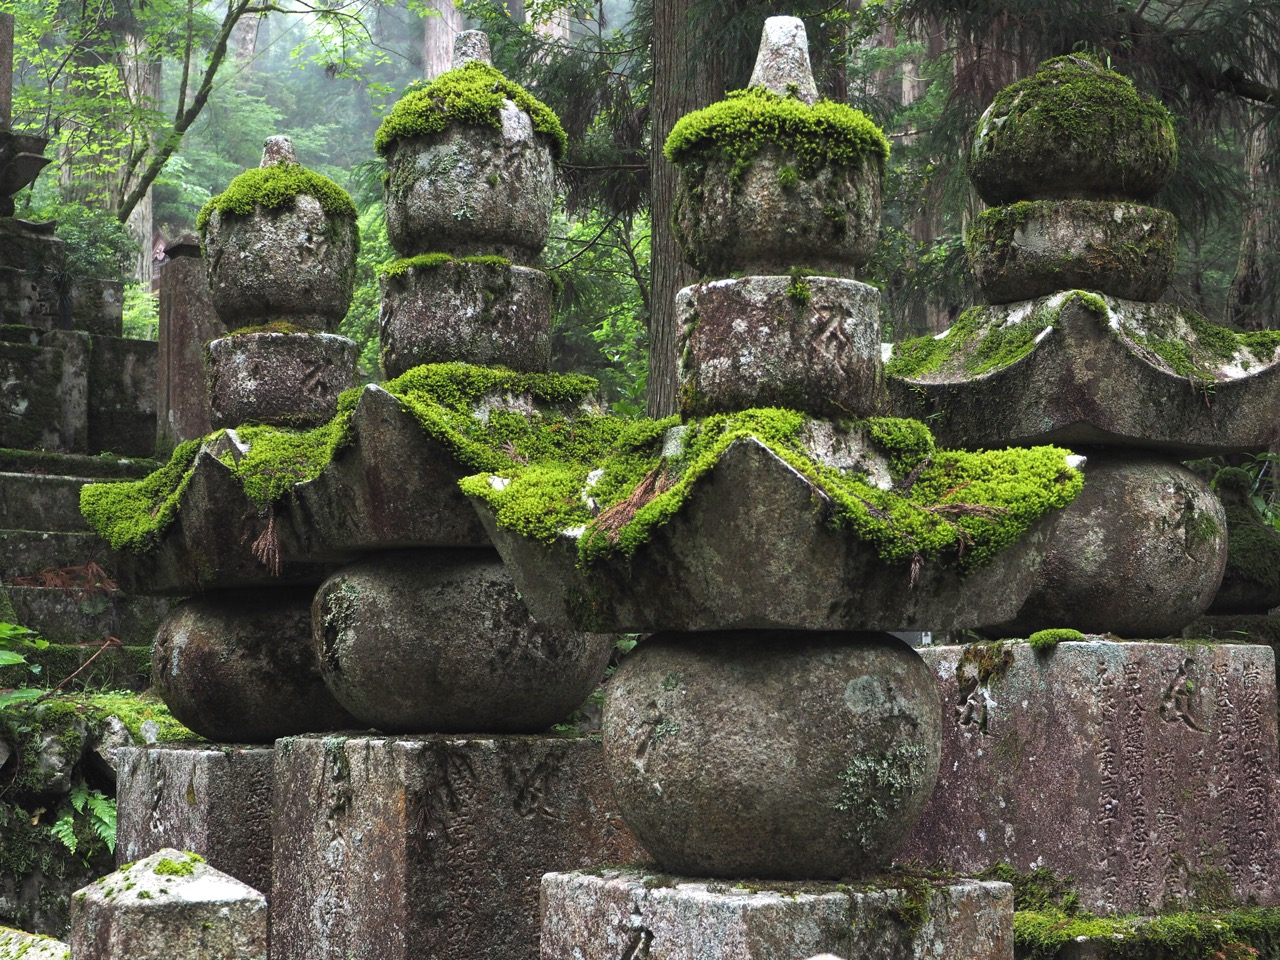 Gravestones are covered in moss in Okunoin Cemetery – Japan's largest cemetery – at Mount Koyasan. The cemetery is set high amongst 600-year-old cedar trees, where mountain fog creates a mysterious atmosphere. Image: Alison Binney